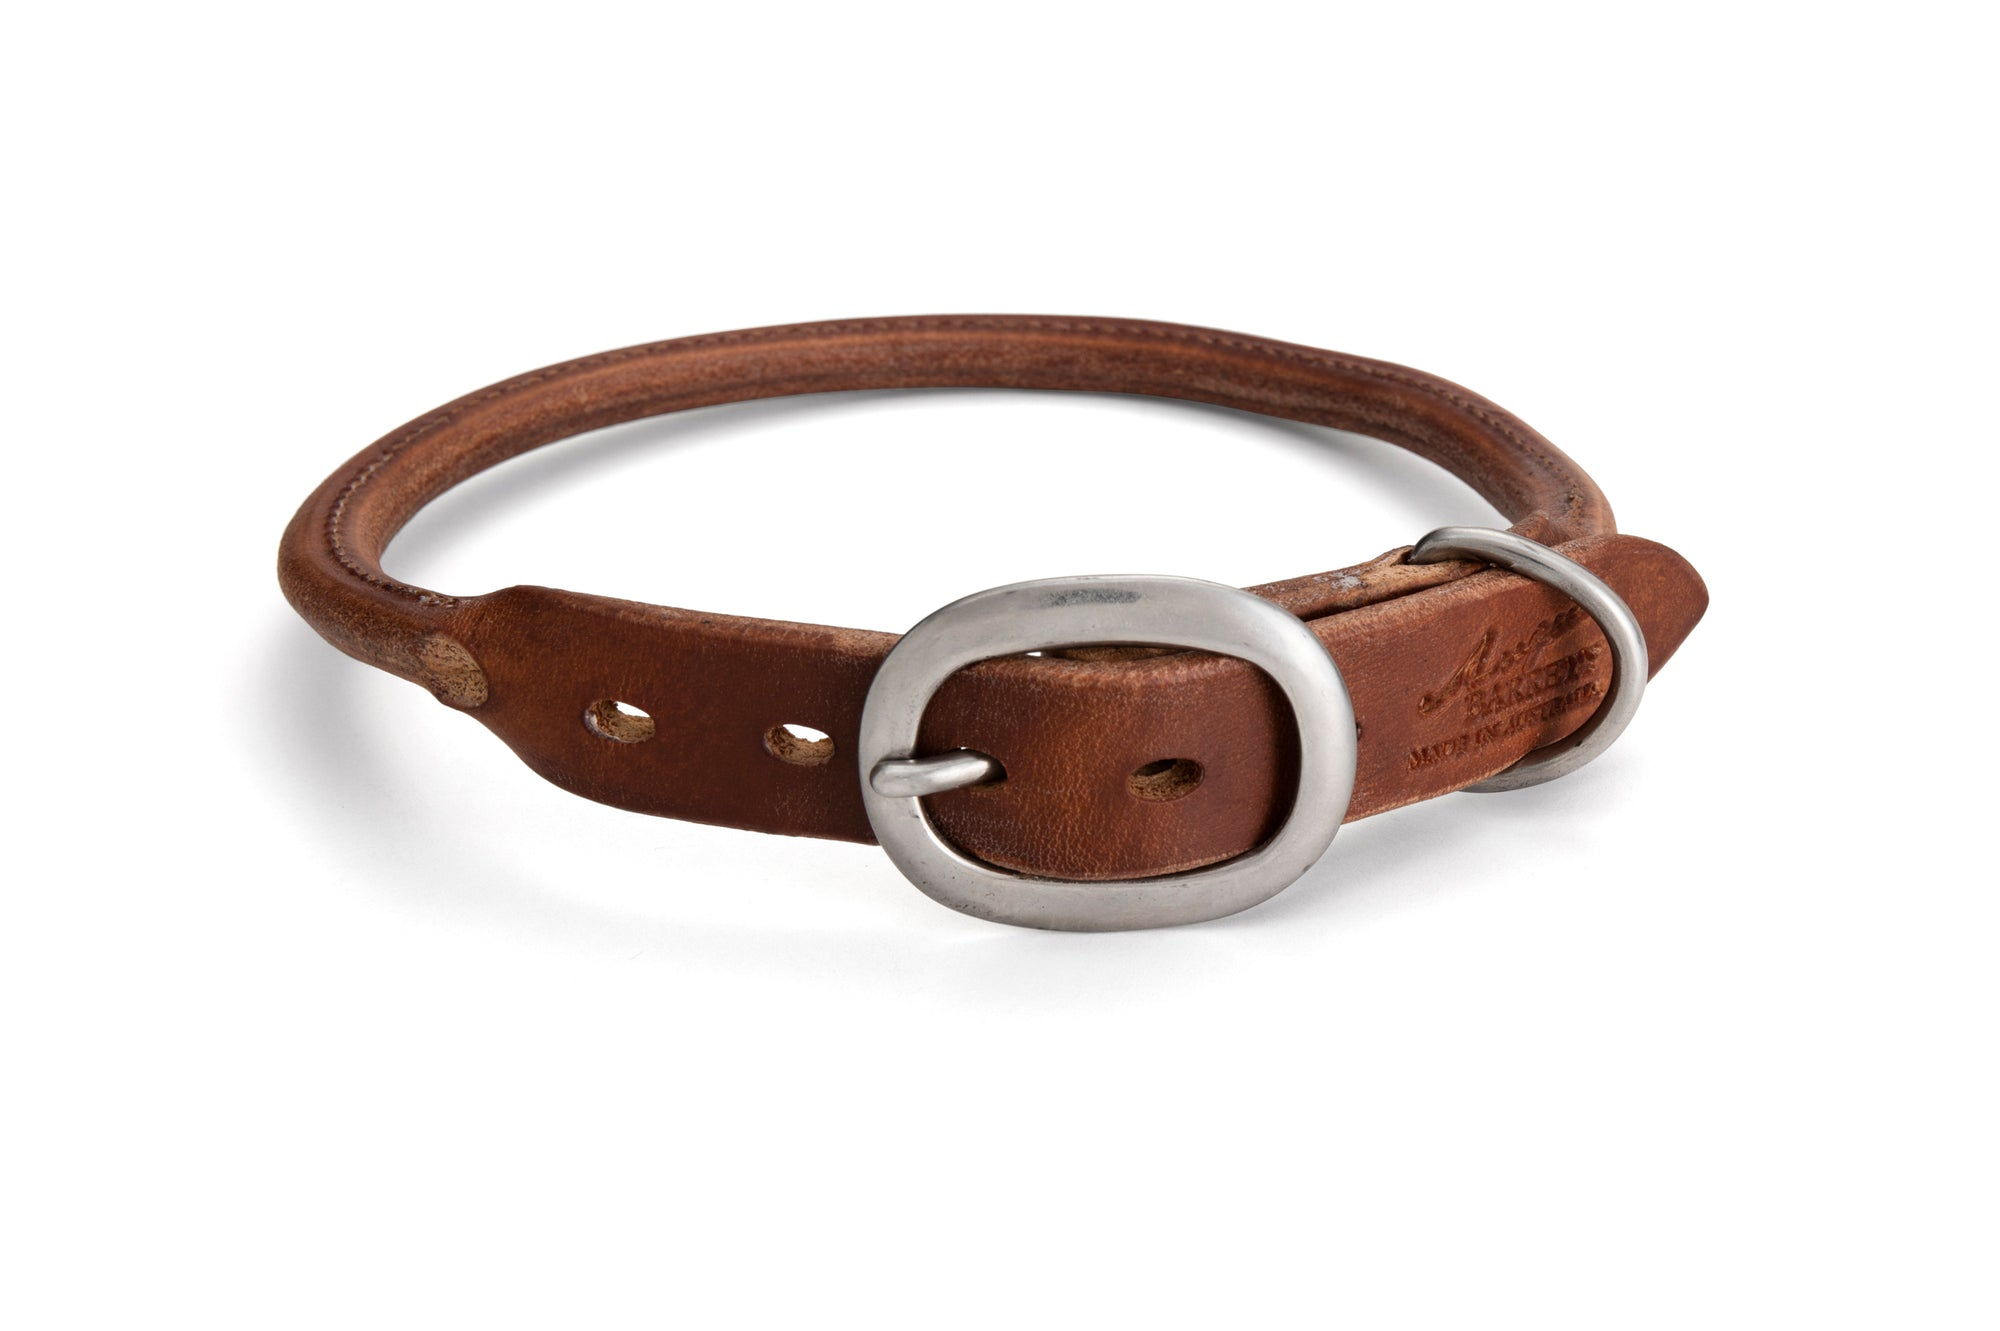 Angus Barrett Rolled Leather Dog Collar in Brown